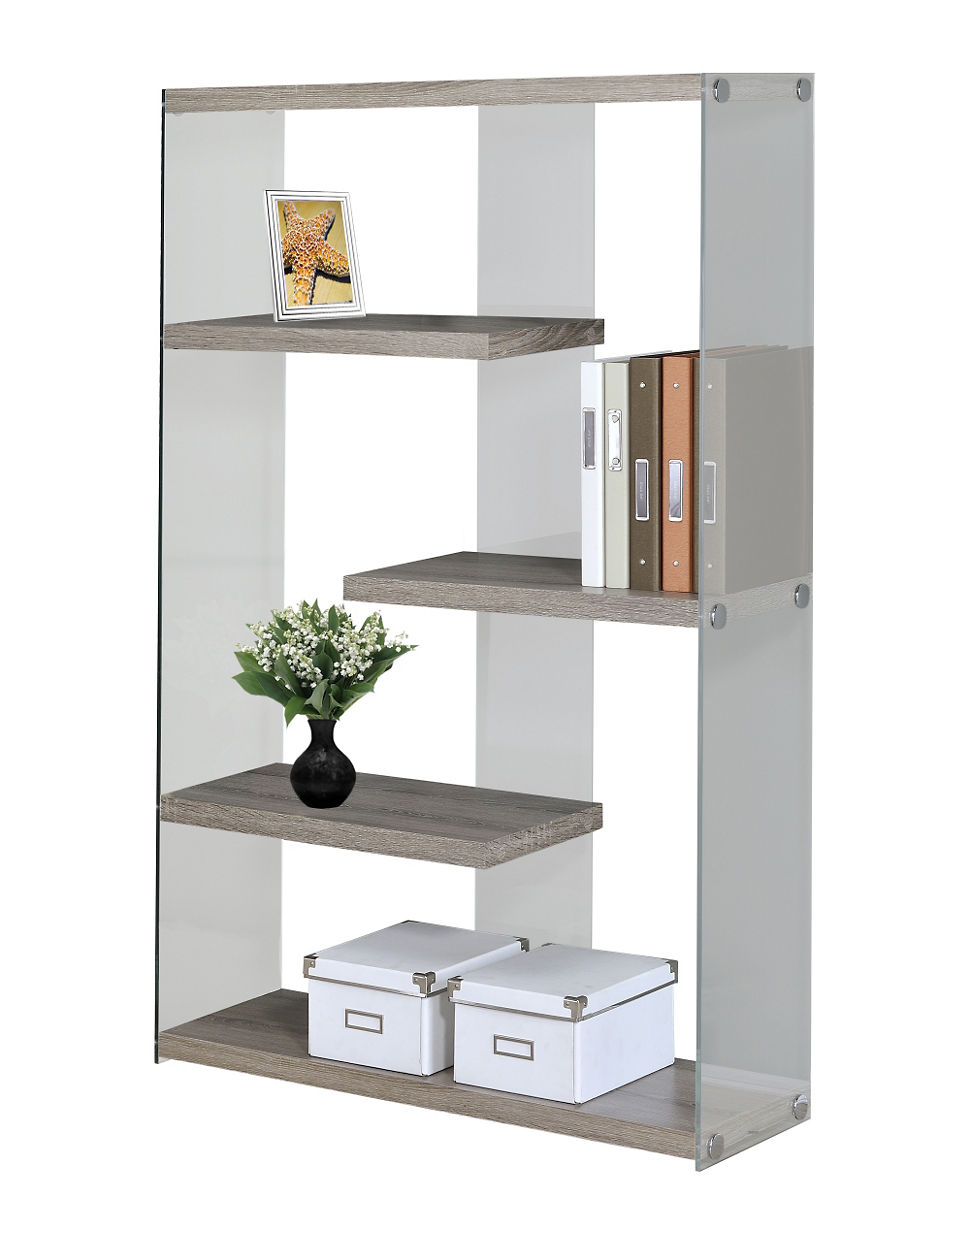 options shelf types each bookcases storage backless with shelves of sections is bookshelf intricate a many different an this cube